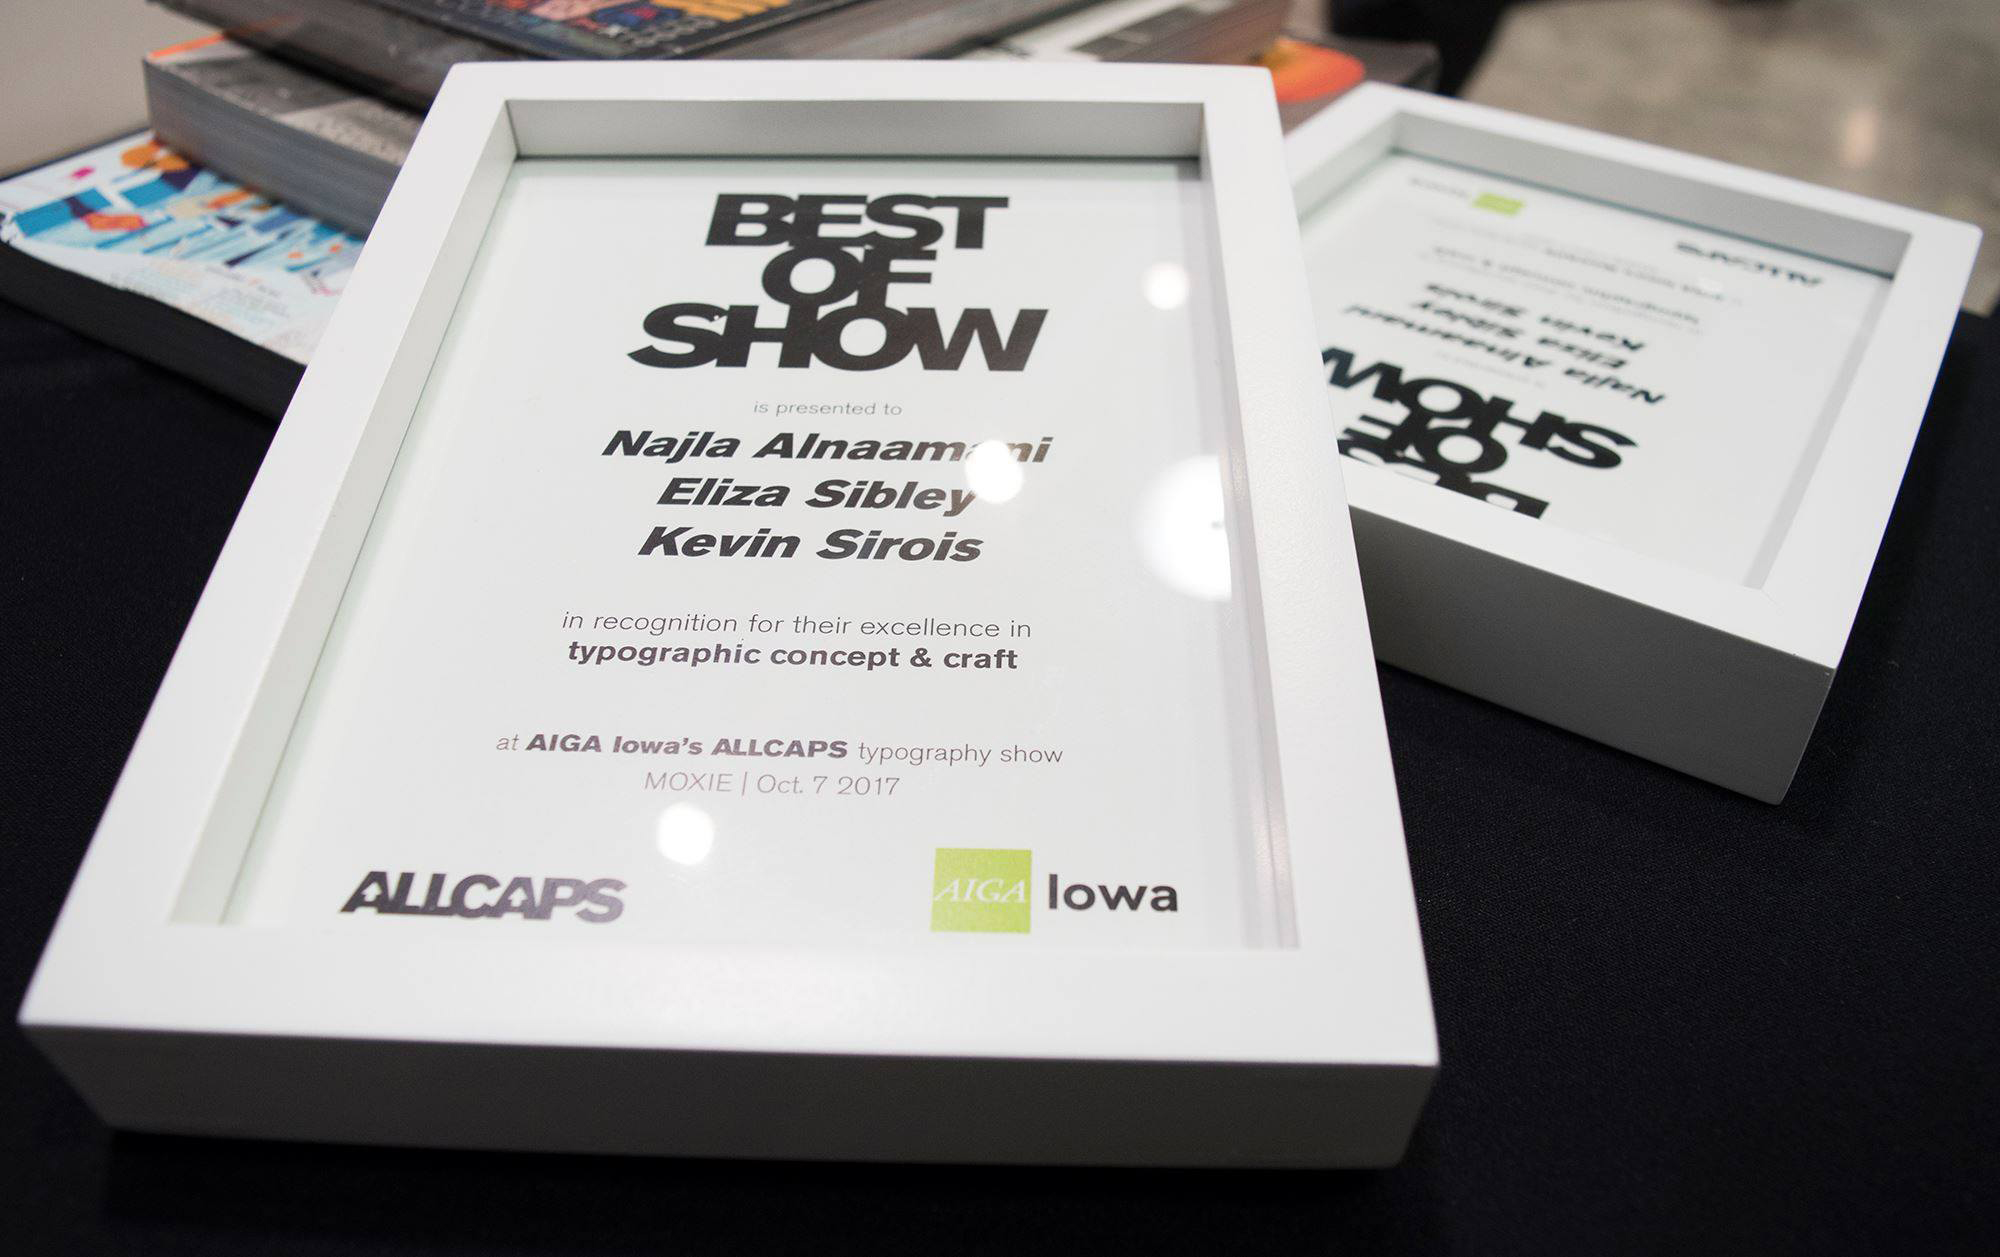 The award for Best of Show in the AIGA Iowa ALLCAPS Typography Show went to a collaborative project created by 3 graphic design students: Najla Al-Naamani, Eliza Sibley and Kevin Sirois.